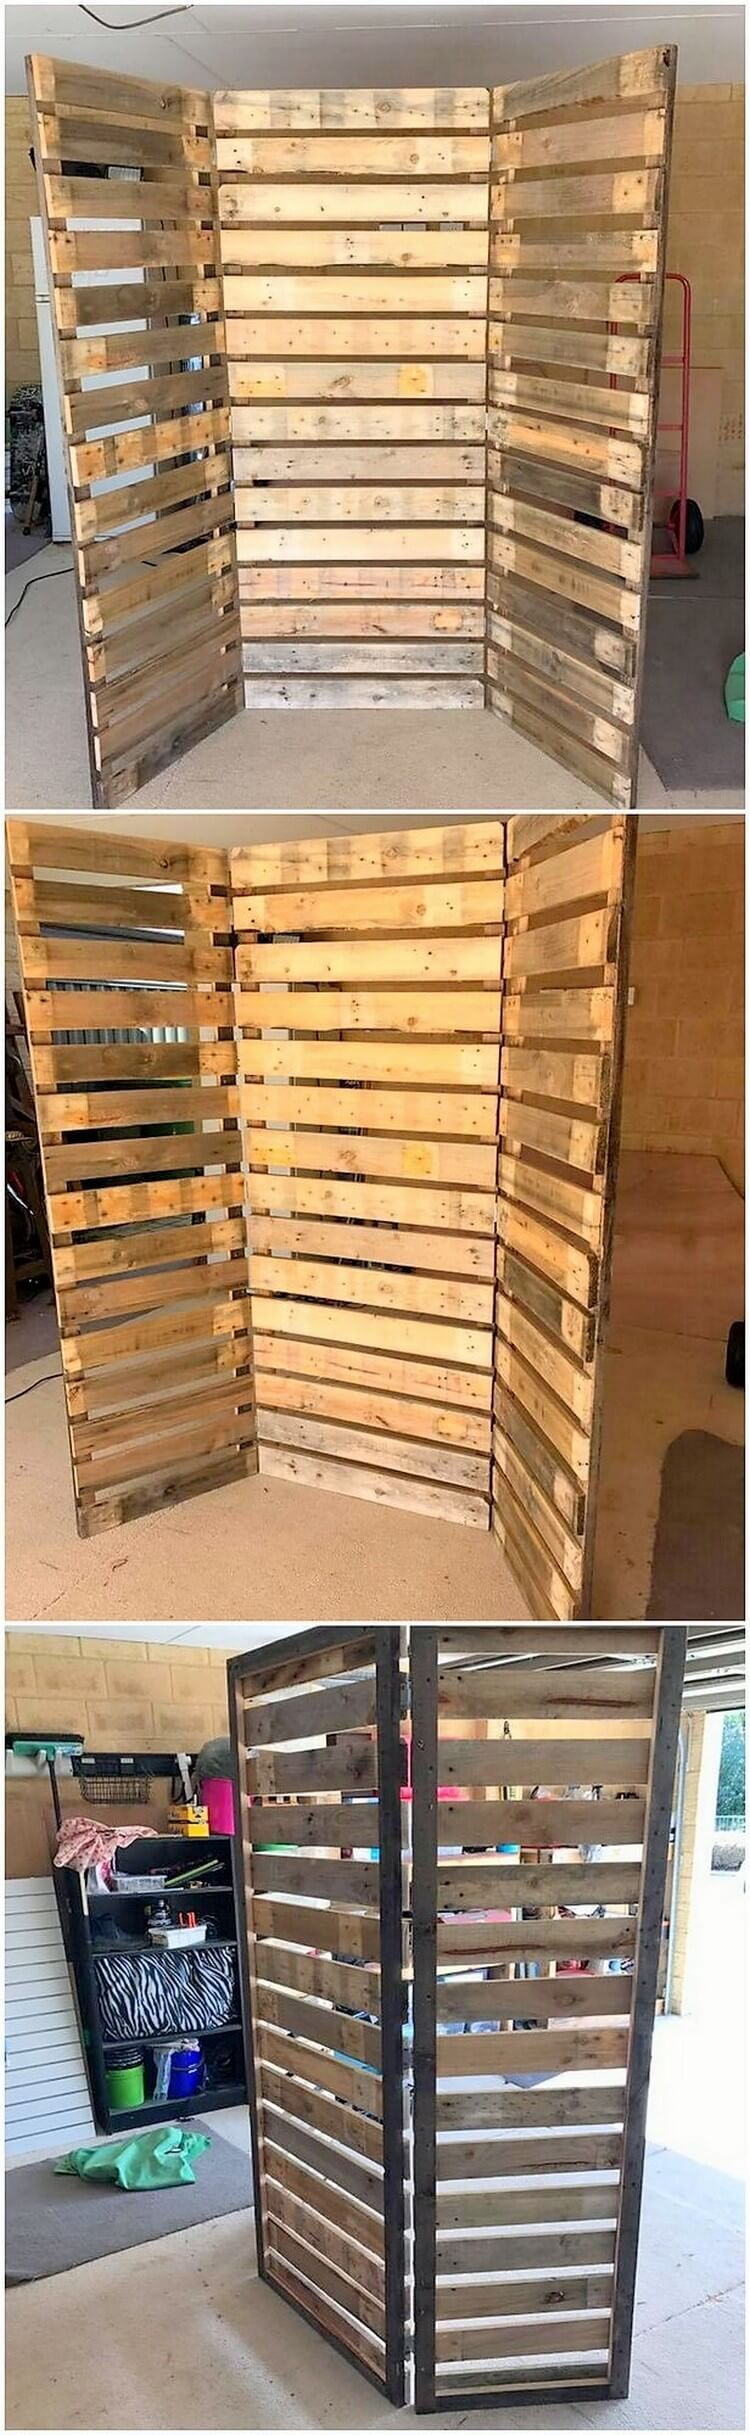 Exciting ways to make use of wood pallets in diy projects pallet